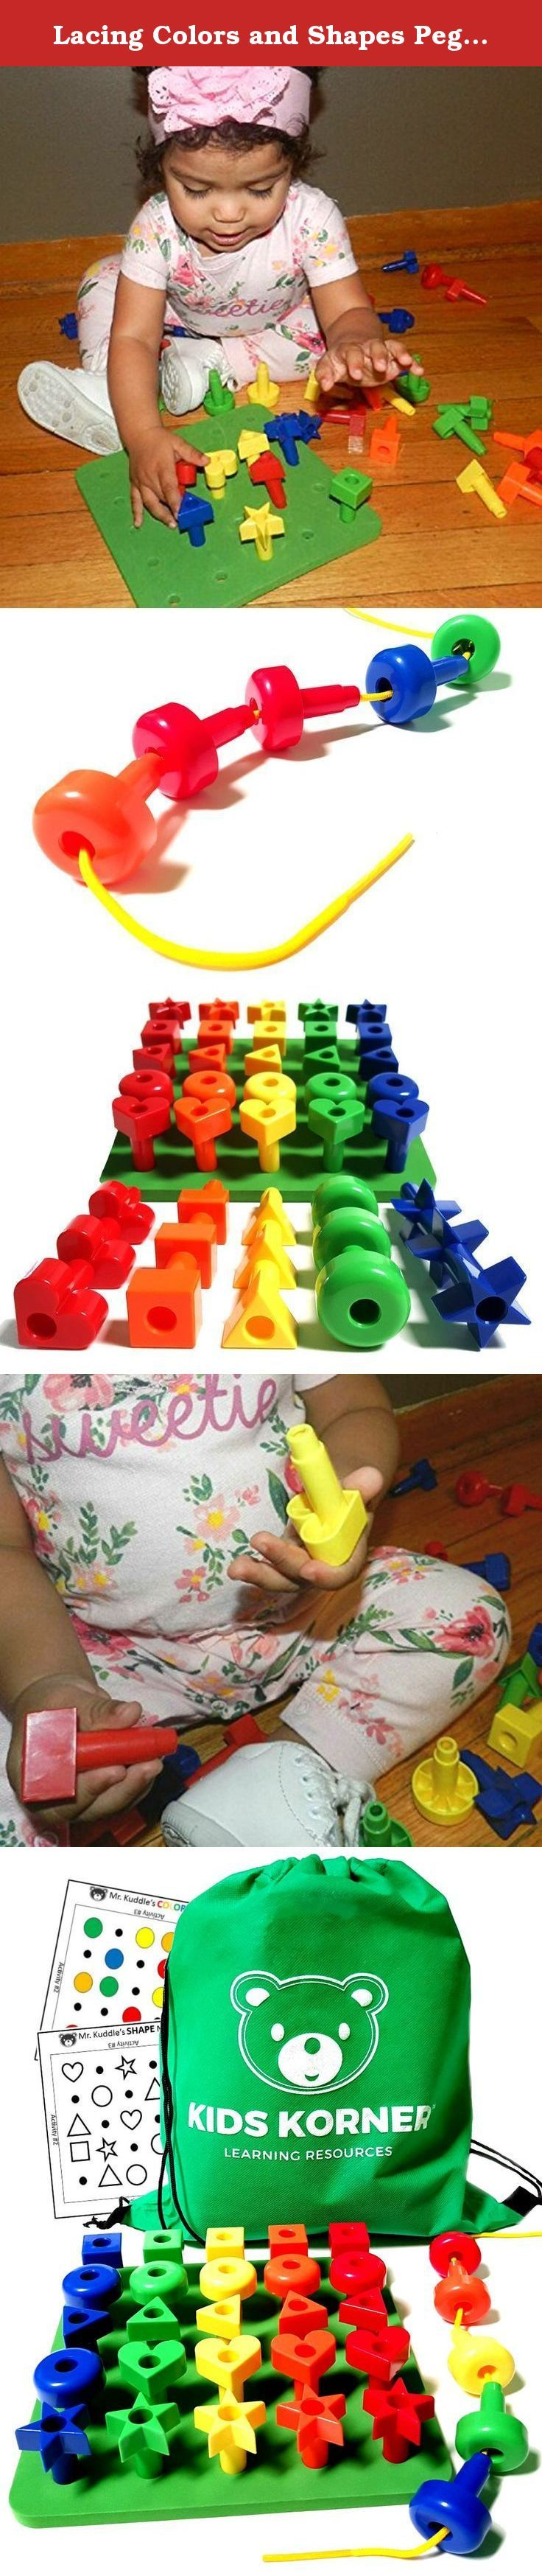 Lacing Colors and Shapes Pegboard Building Puzzle Set with Pattern Card, Bonus Travel Backpack & 36pg Activity eBook Montessori Fine Motor Color Recognition Sorting Counting Matching Stacking Toy Kids. Kids Korner LACING COLORS & SHAPES SORTER PEGBOARD SET with Rainbow Jumbo Lacing Beads. A wonderful shapes puzzle for toddlers to learn the basics! MR. KUDDLES, your learning guide. Let Mr. Kuddles take you step by step into the world of colors for kids, shapes games for toddlers, lacing...